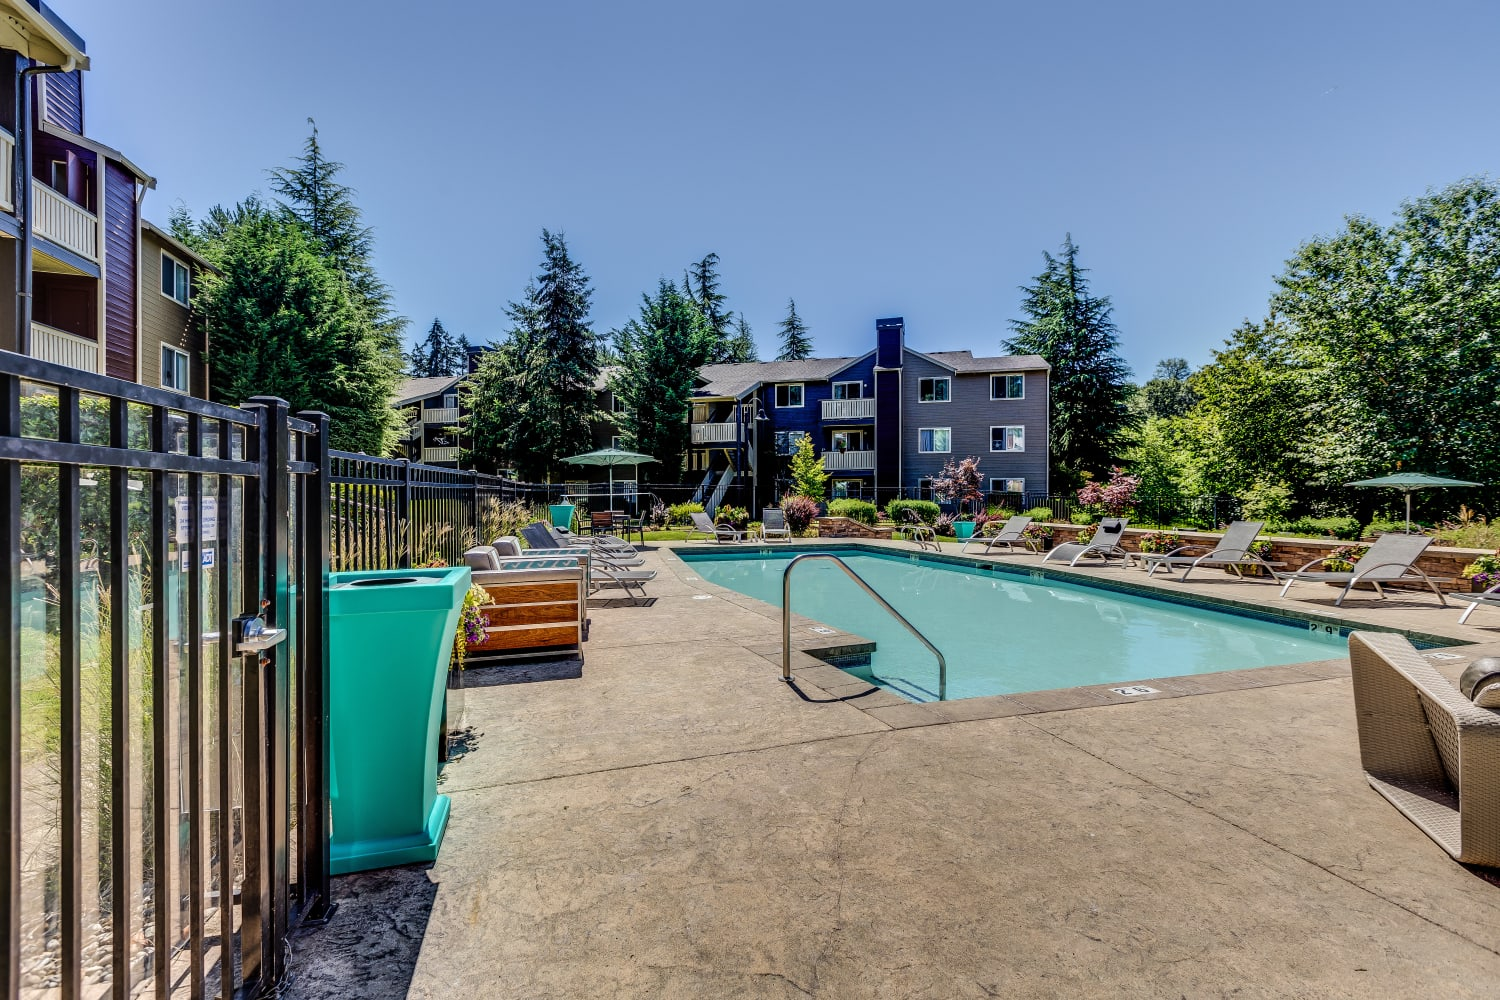 Entrance to the pool at The Preserve at Forbes Creek in Kirkland, Washington